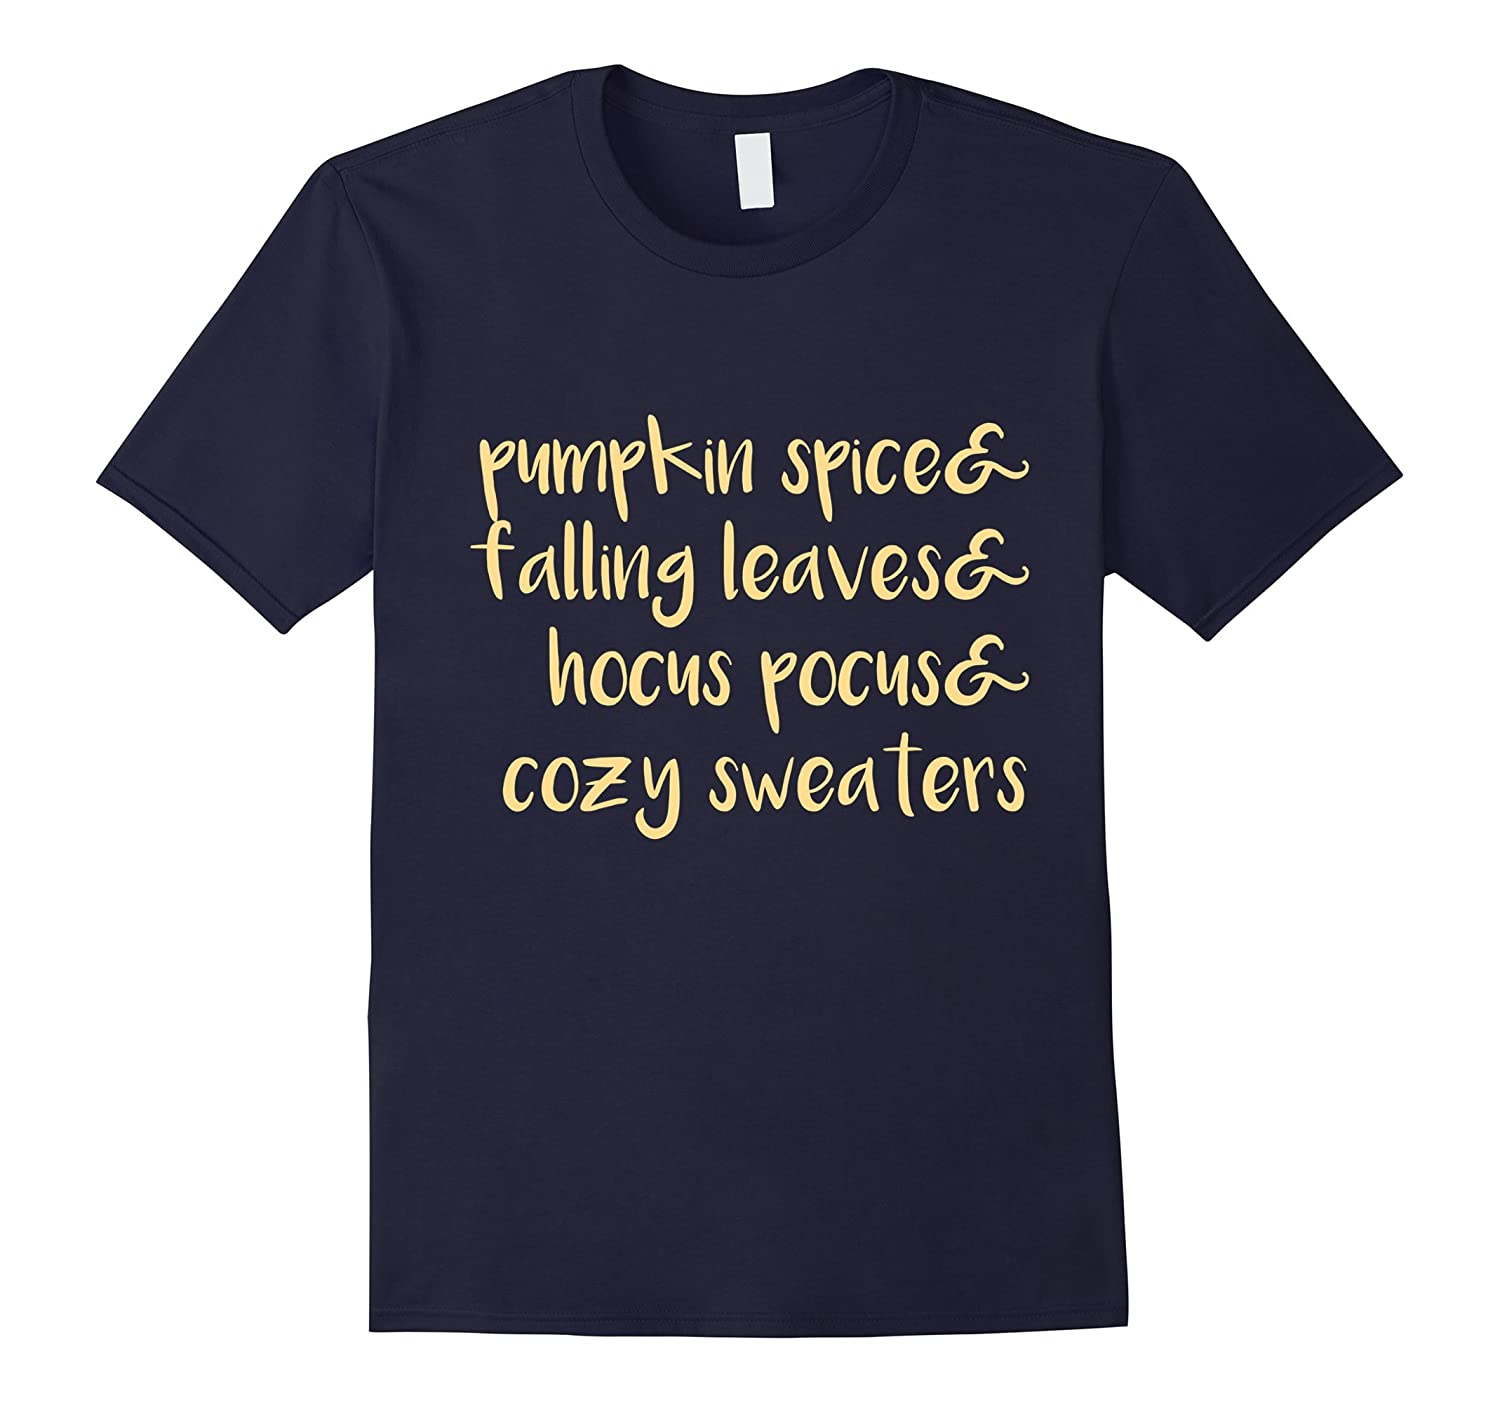 Autumn Cozy T-Shirt, Pumpkin Spice, Fall, Falling Leaves-FL